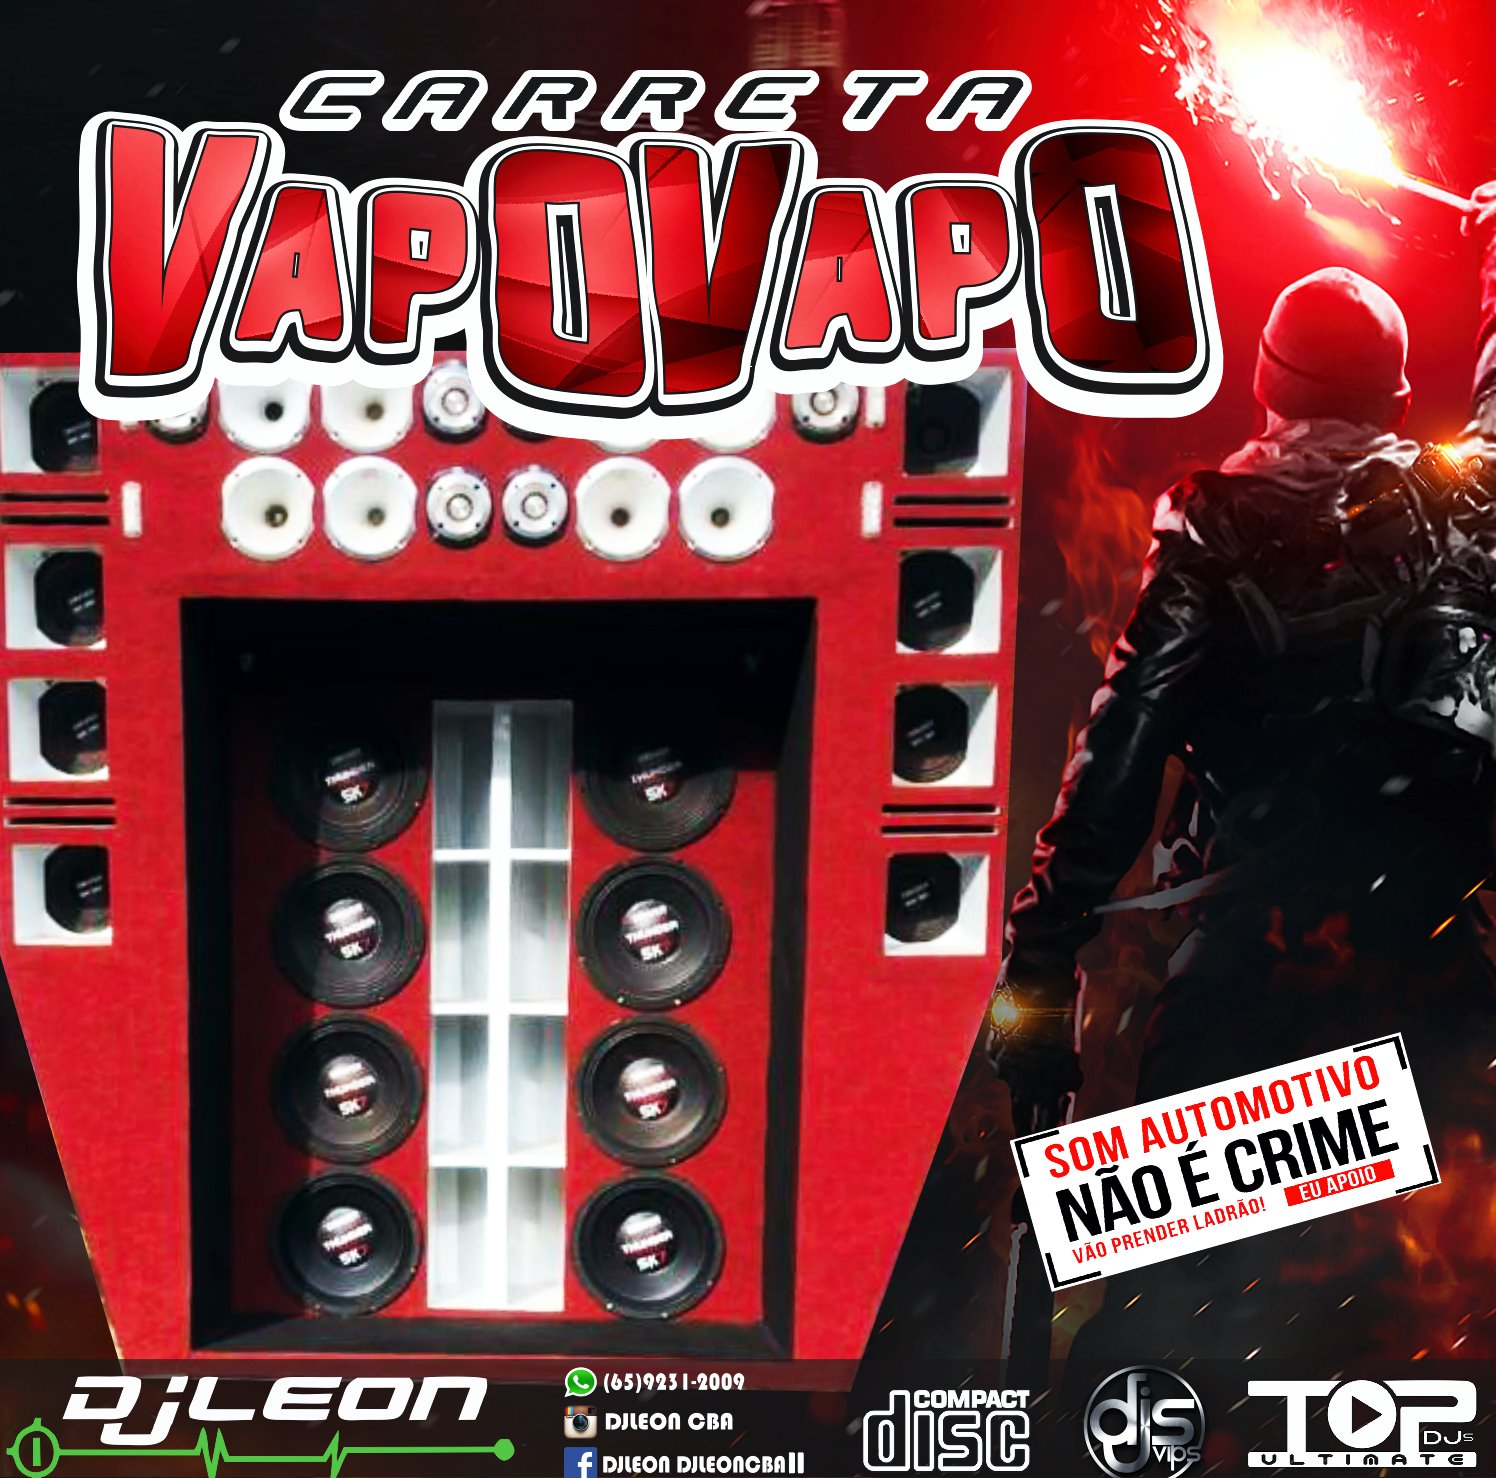 CD CARRETA VAPO VAPO VOL.02-Dj Leon Cba